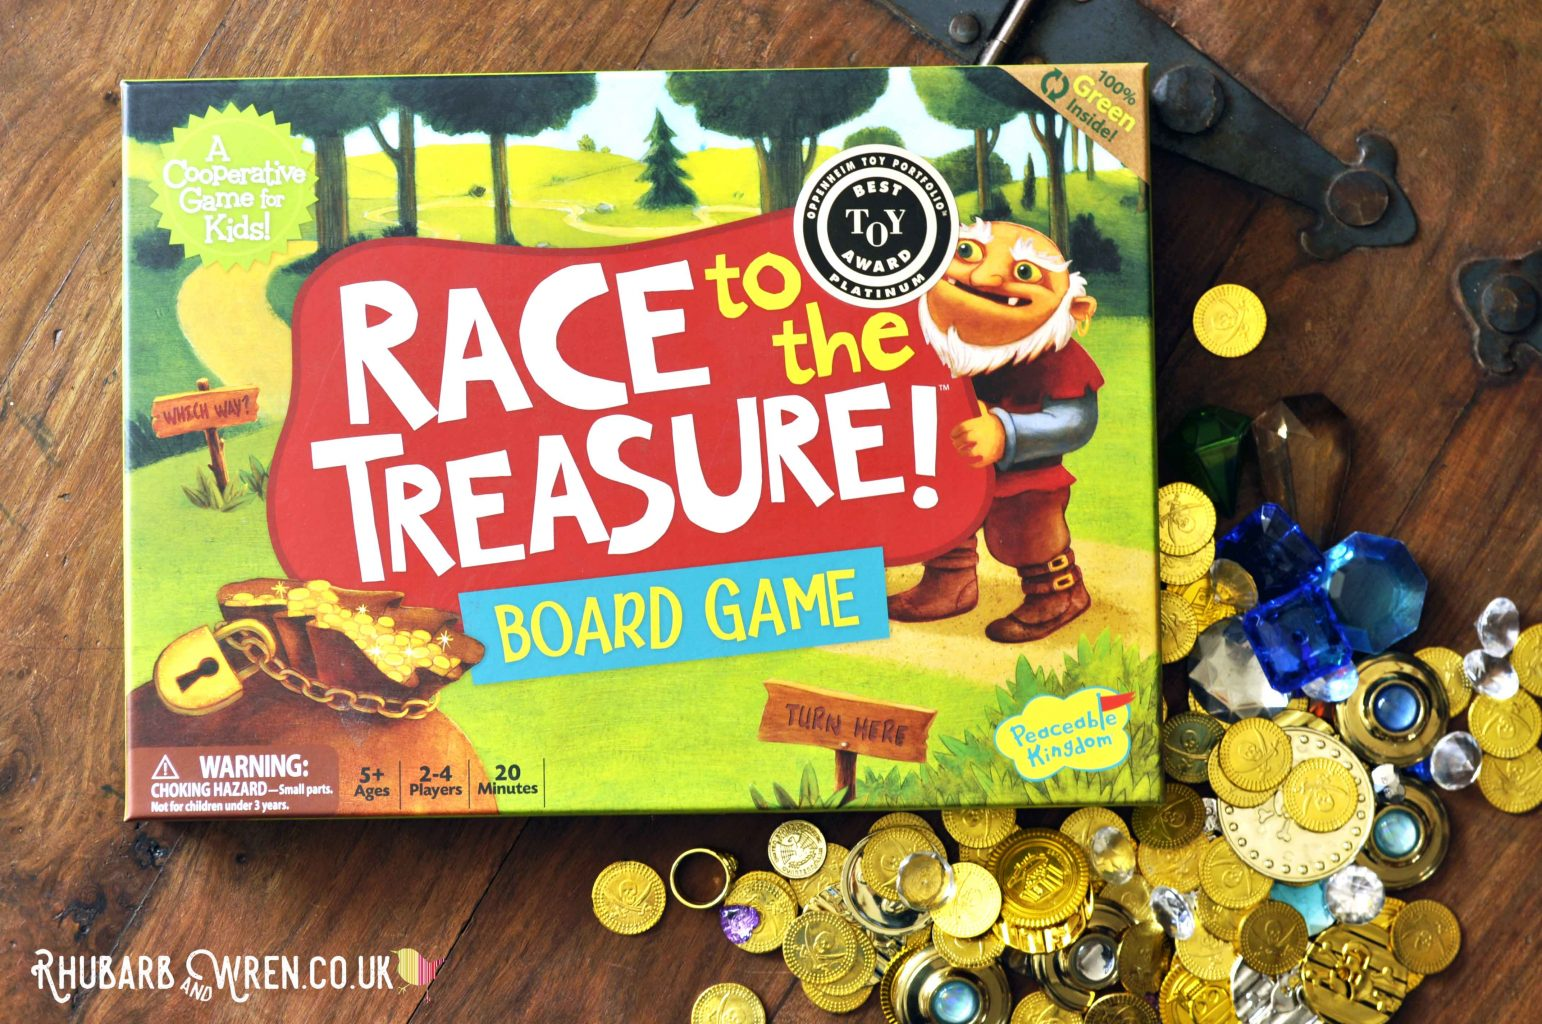 Peaceable Kingdom board game 'Race to the Treasure'